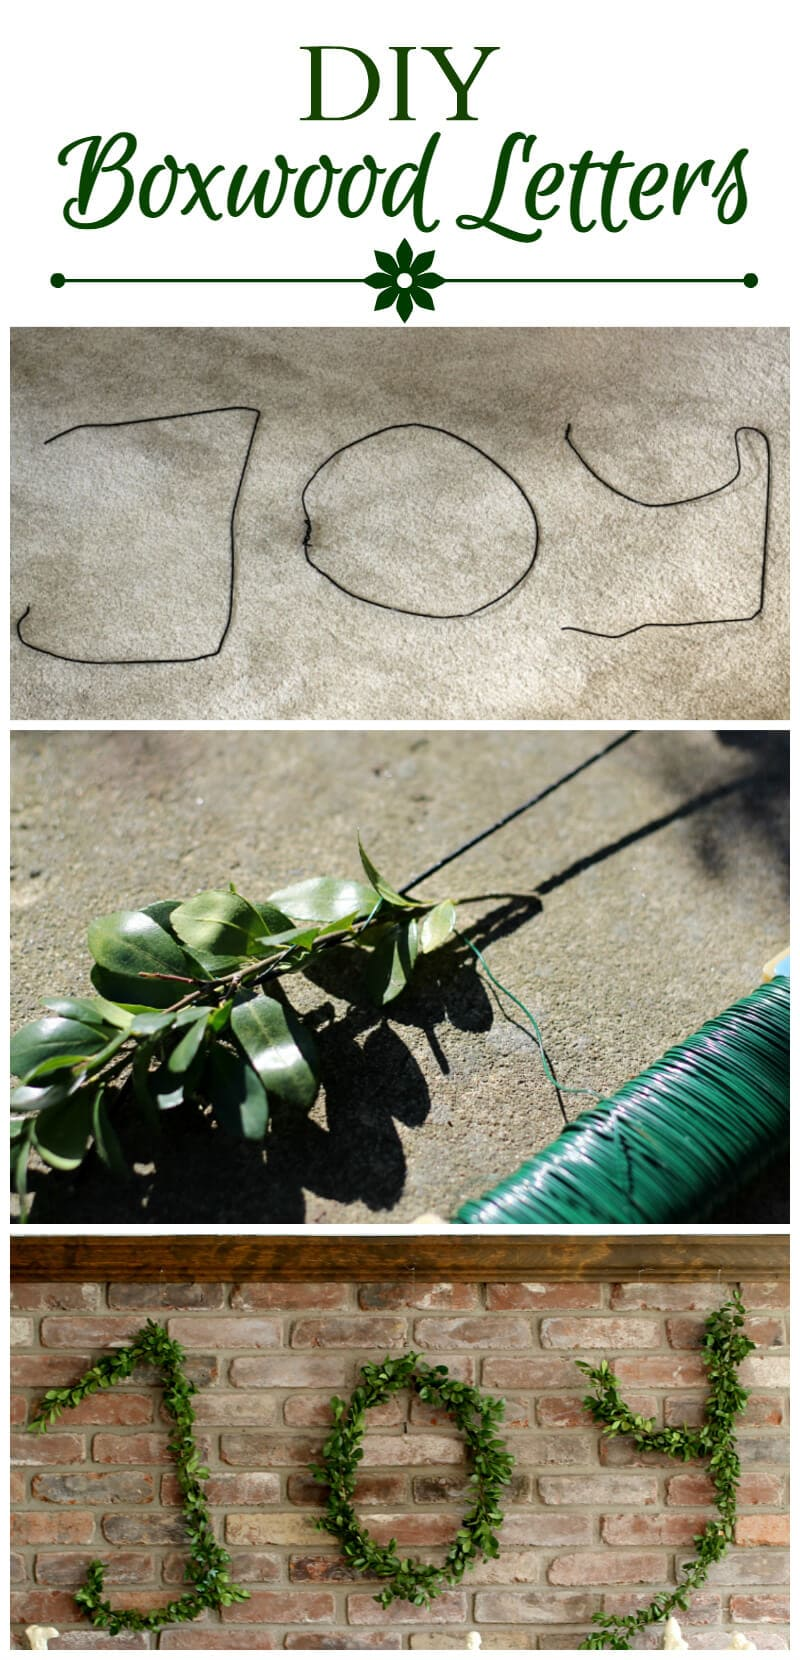 Grouped images showing how to make wire hanger boxwood letters ~ gardenmatter.com